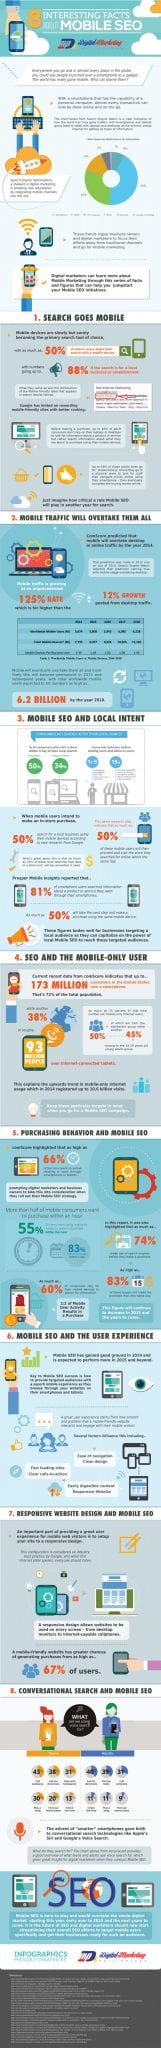 Photo of 8 Interesting Facts about Mobile SEO [INFOGRAPHIC]